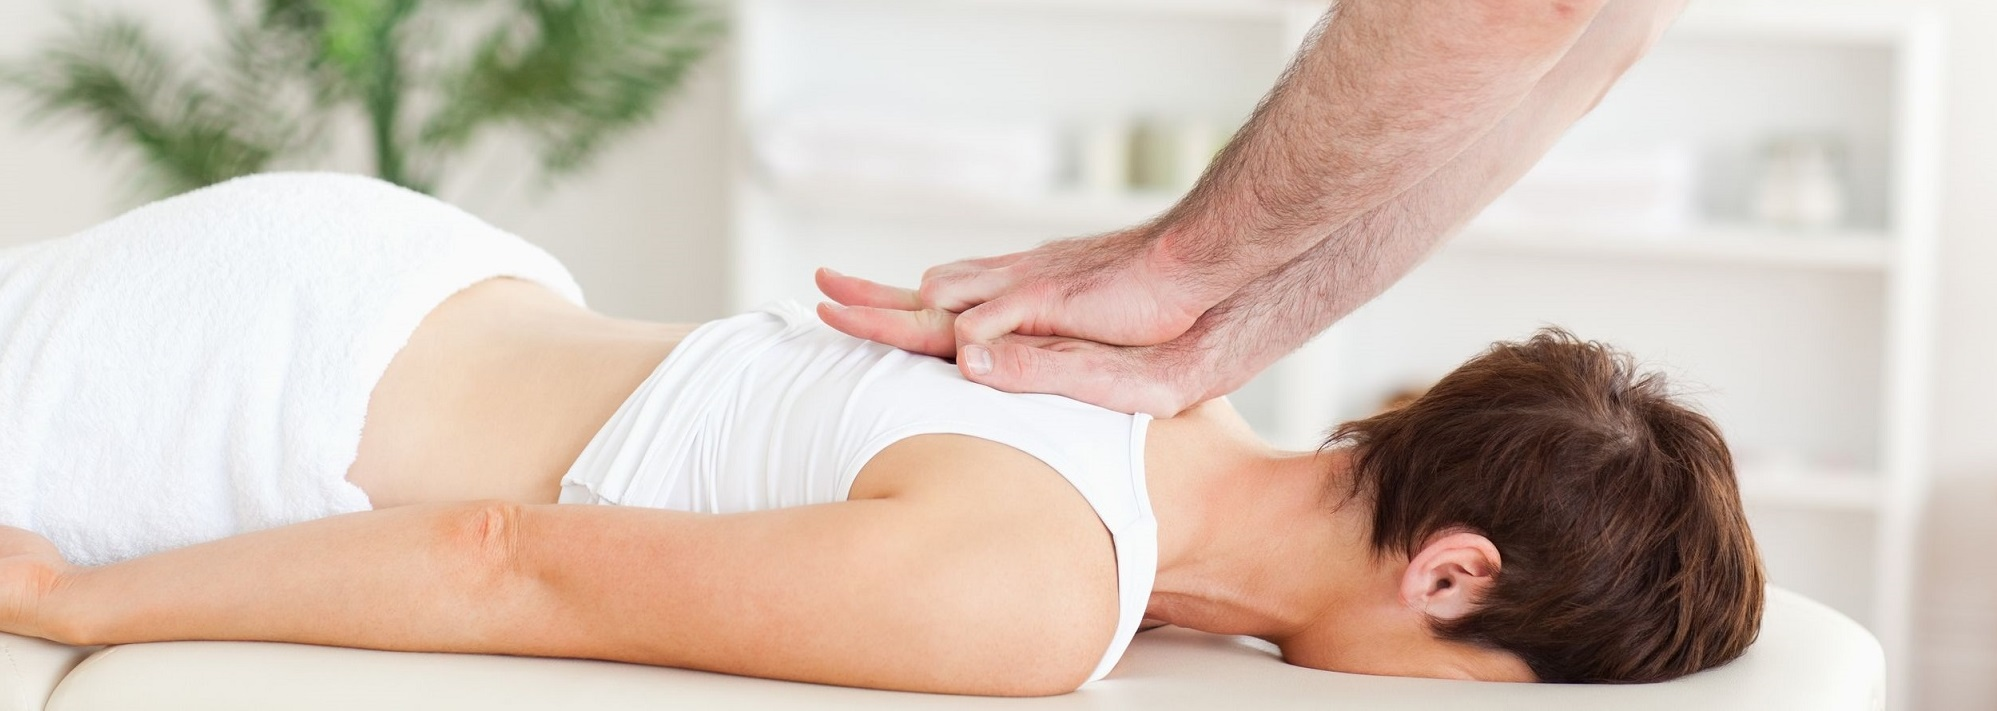 neck pain, back pain, chiropractic adjustment, frisco chiropractor, sports chiropractor